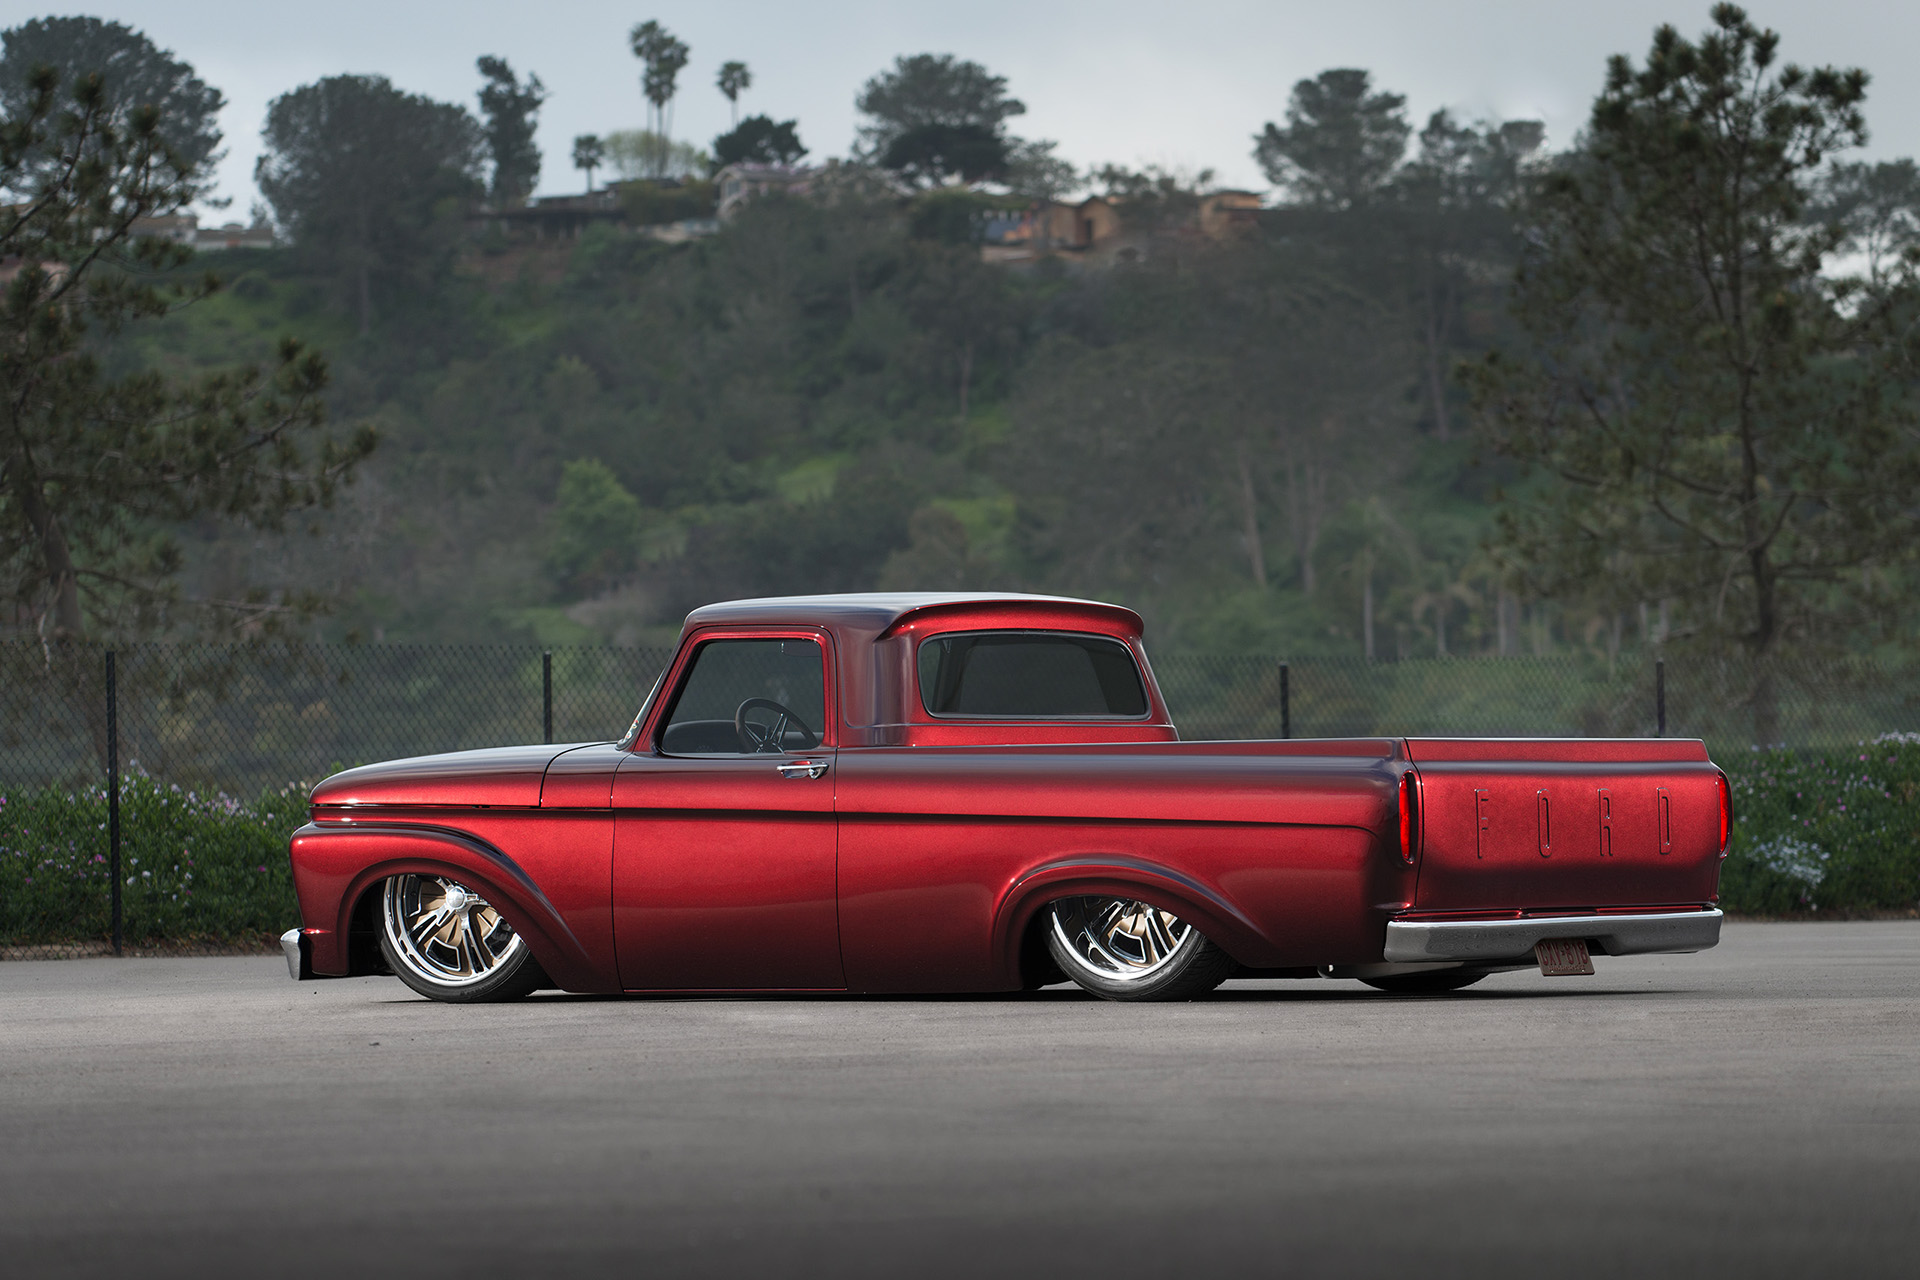 Luke Munnell automotive photography 1961 Ford F-100 truck